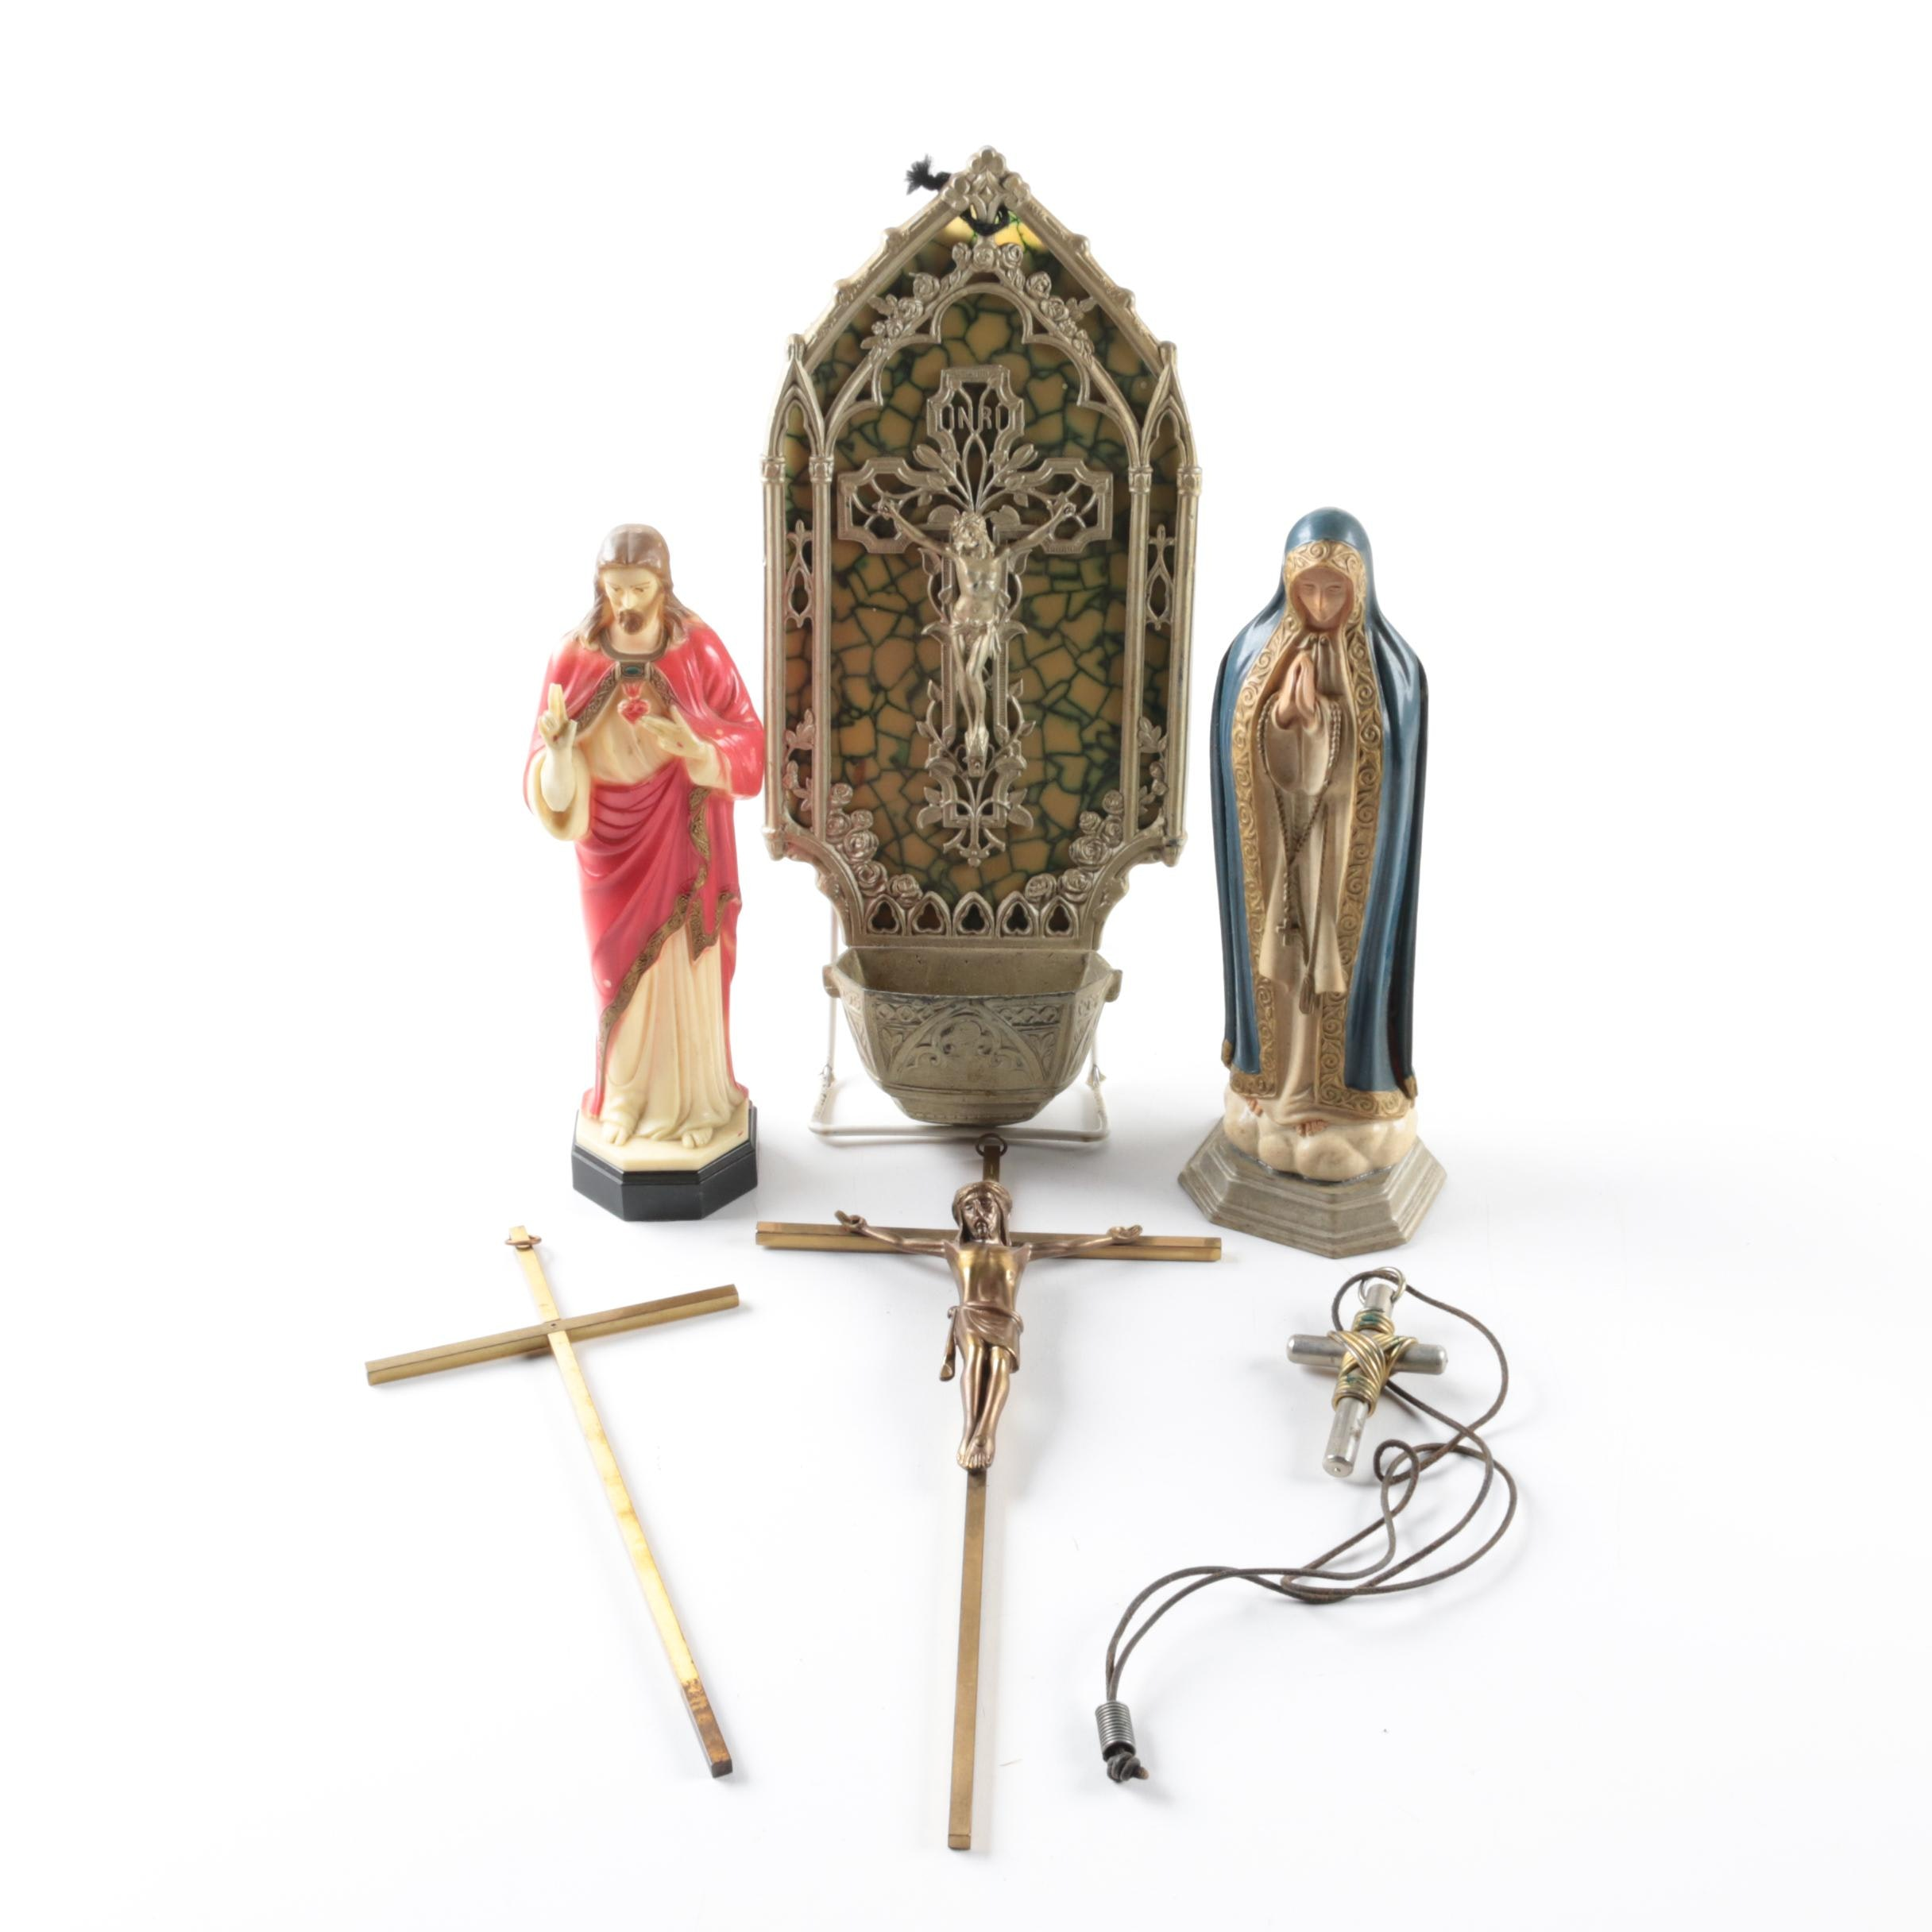 Collection of Christian Crosses, Figurines, and a Font